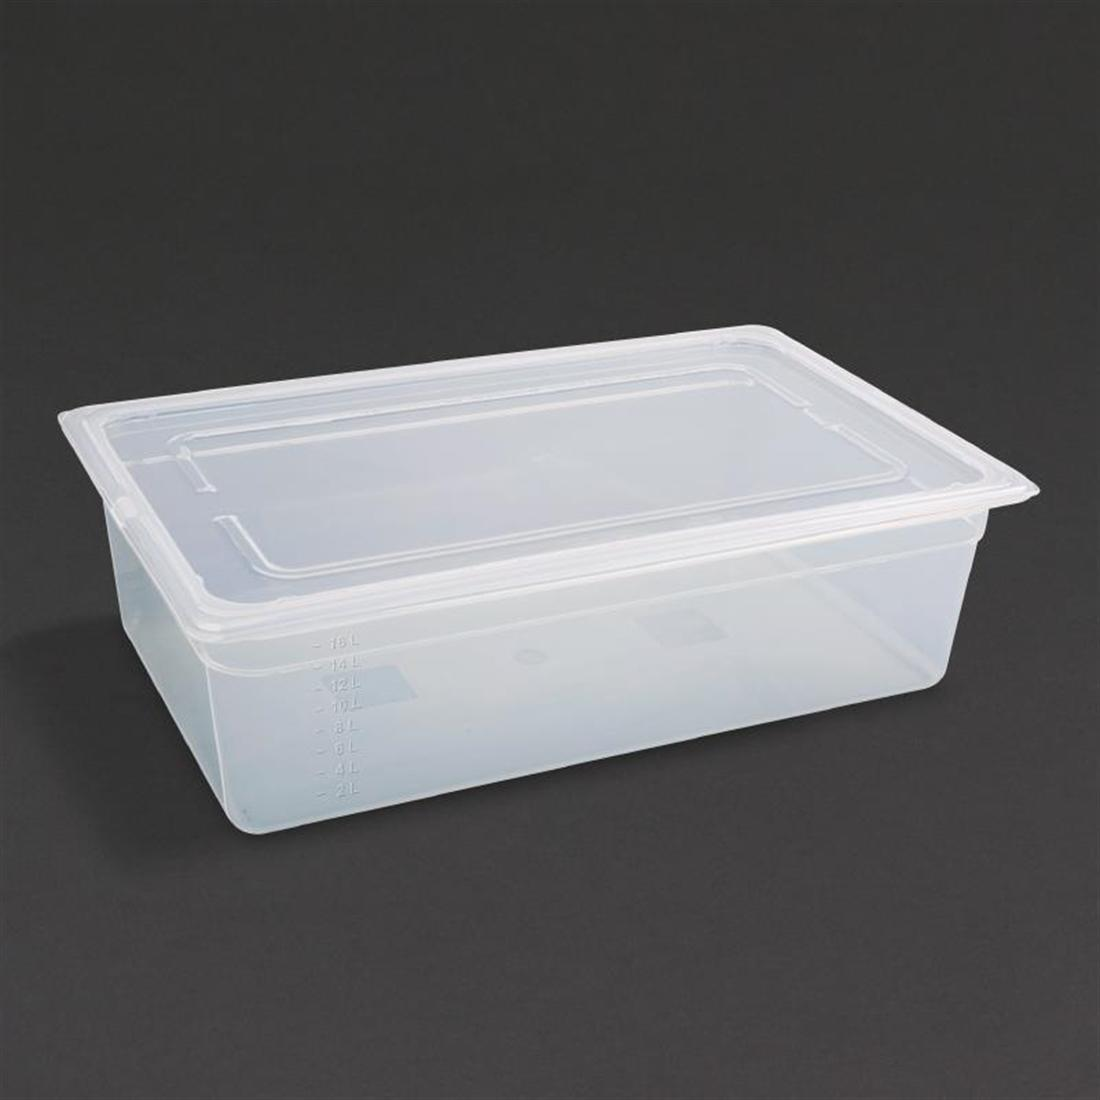 Vogue Polypropylene 1/1 Gastronorm Container with Lid 150mm - Pack of 2 - GJ512